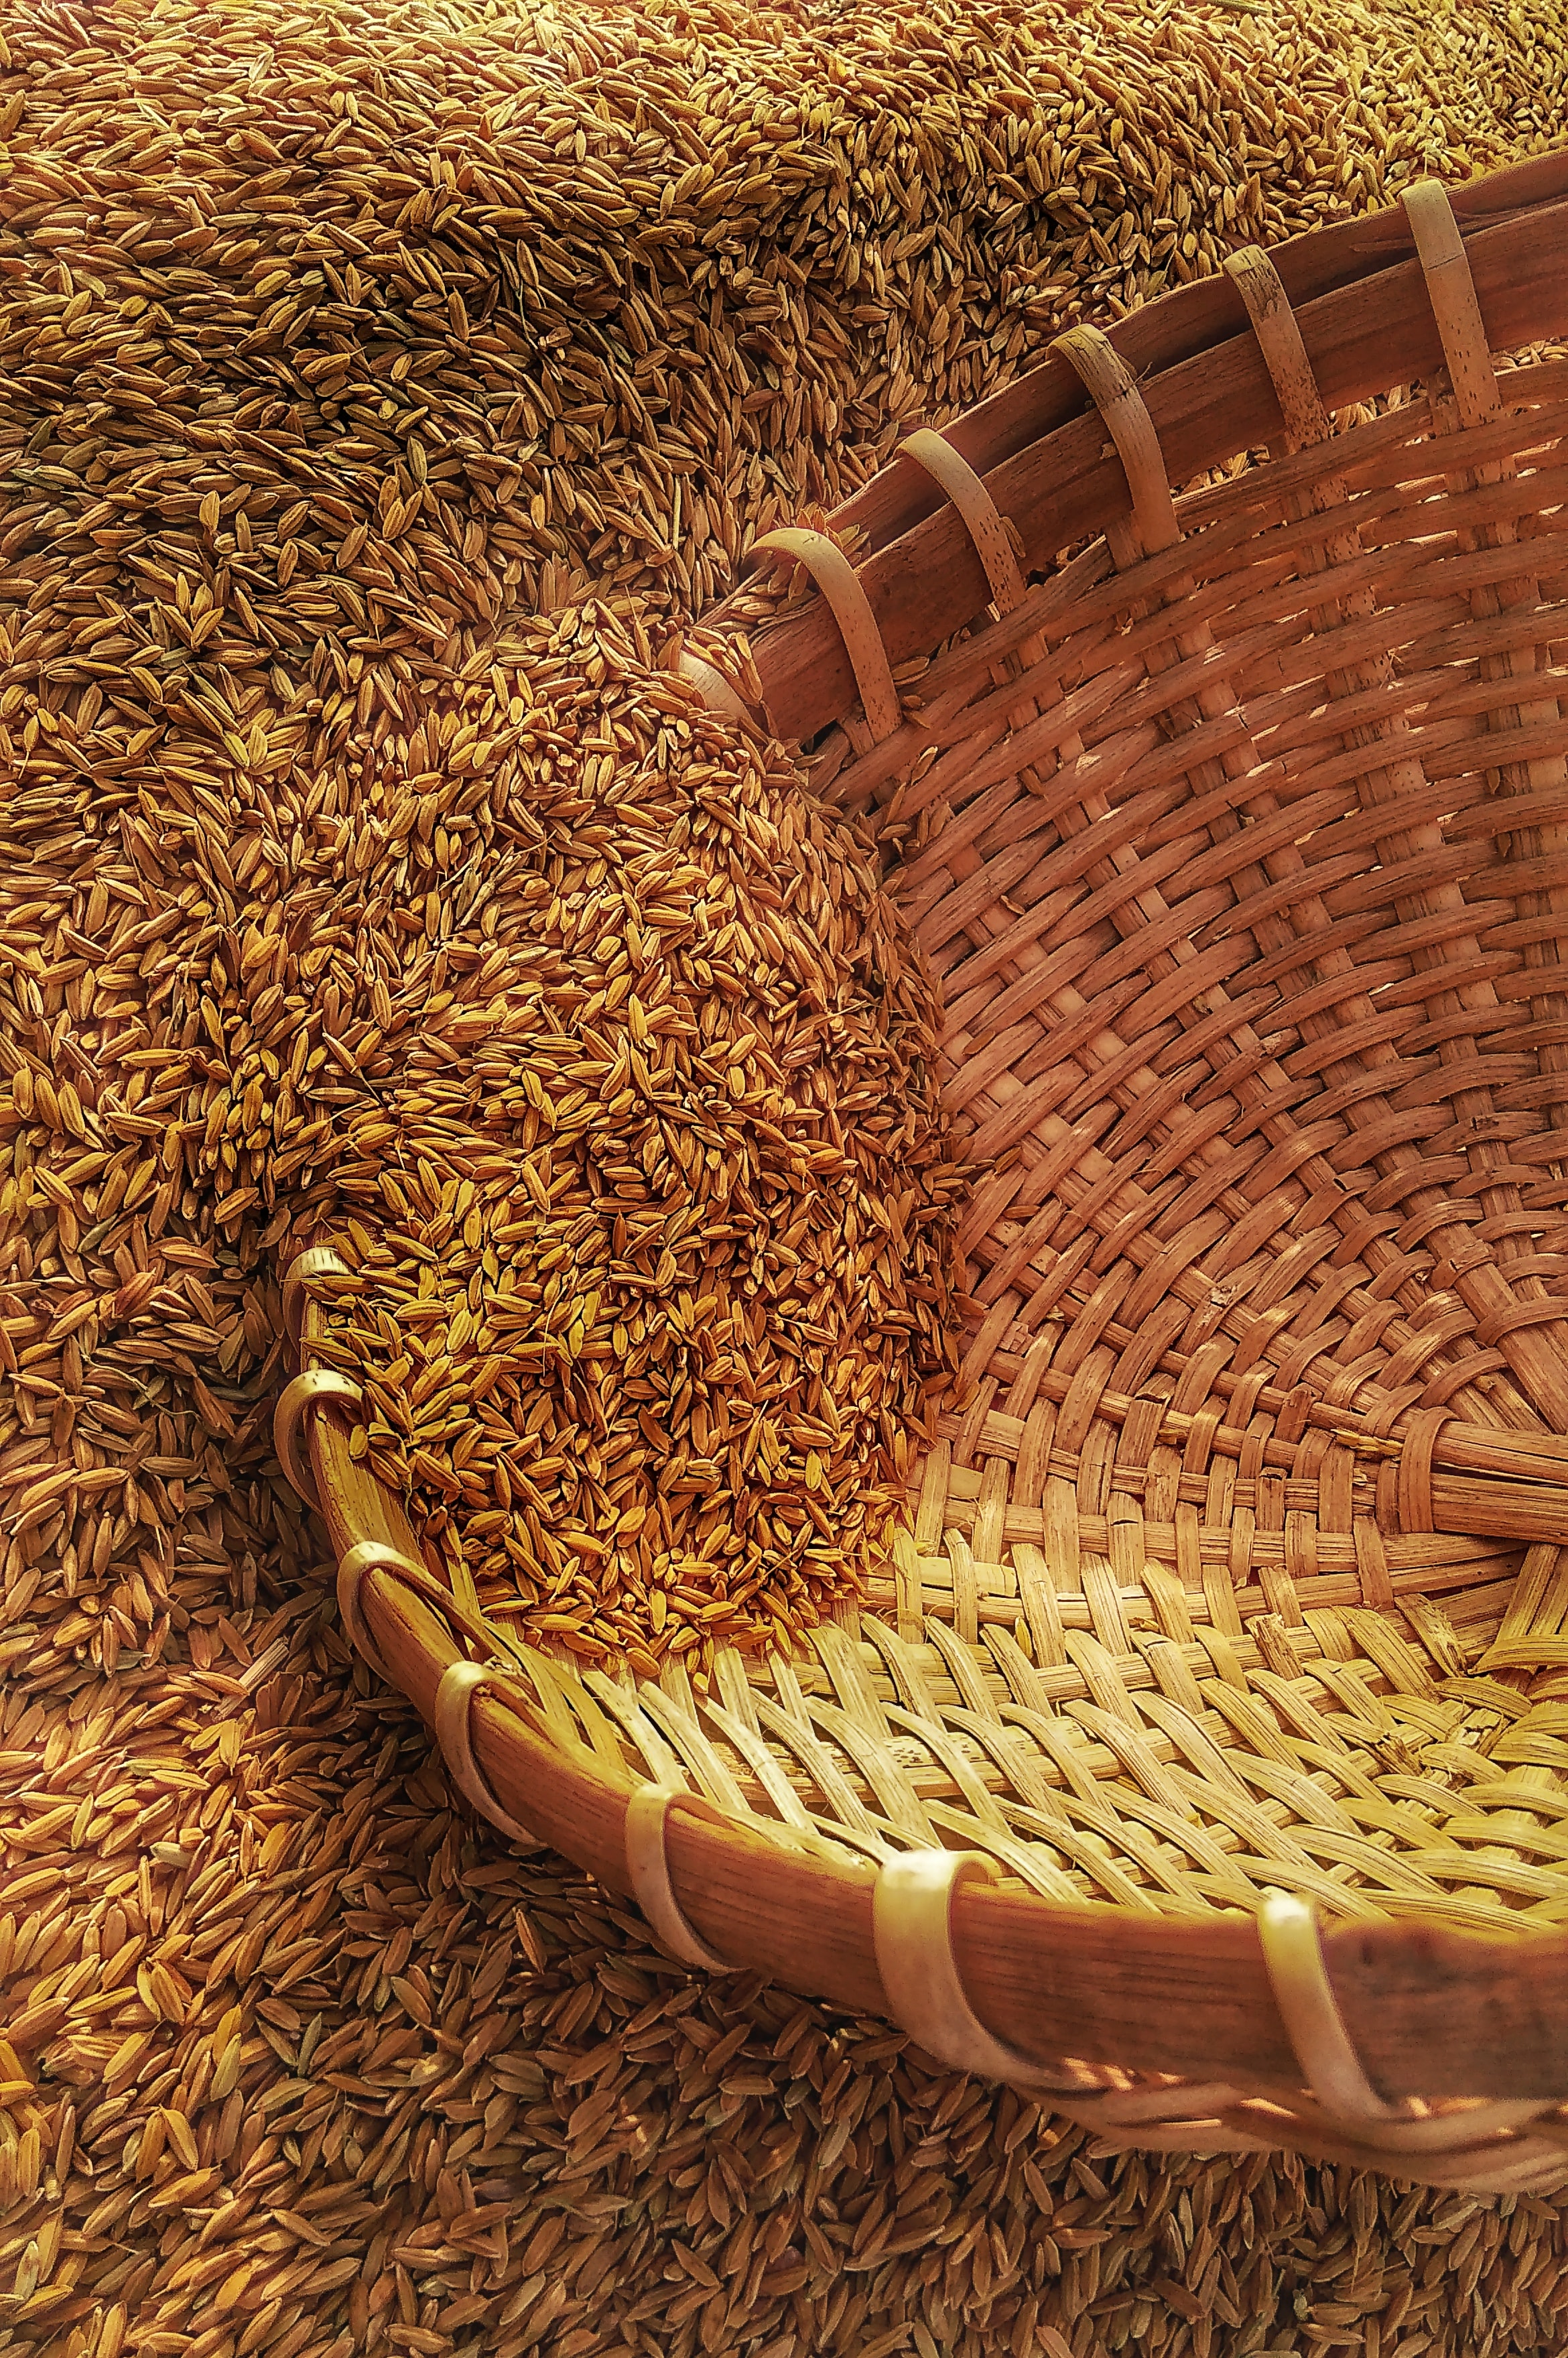 wicker basket on rice grains